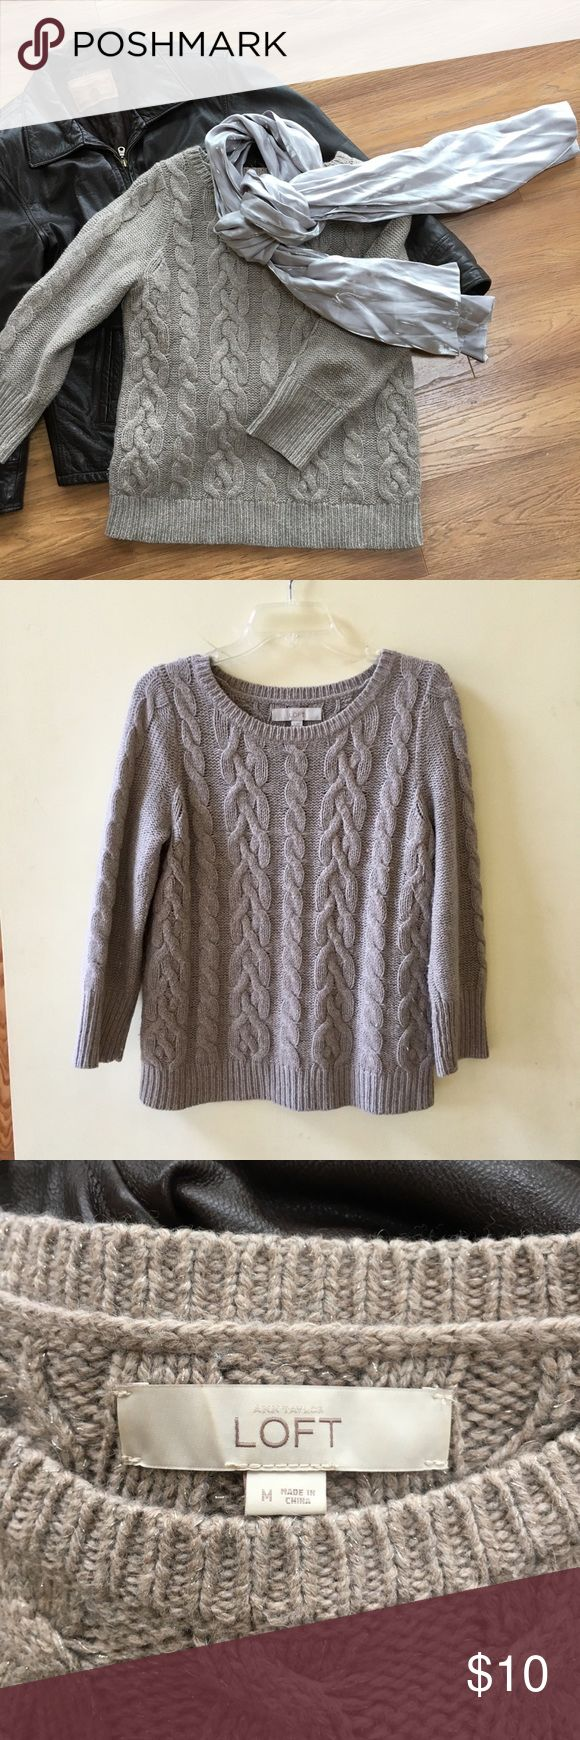 Ann Taylor Loft sweater Ann Taylor Loft crewneck sweater with three-quarter sleeves, color: pale taupe with metallic silver strands woven throughout for a subtle shimmery effect, size medium. Super soft, made of a blend including cotton, wool and rabbit hair. LOFT Sweaters Crew & Scoop Necks